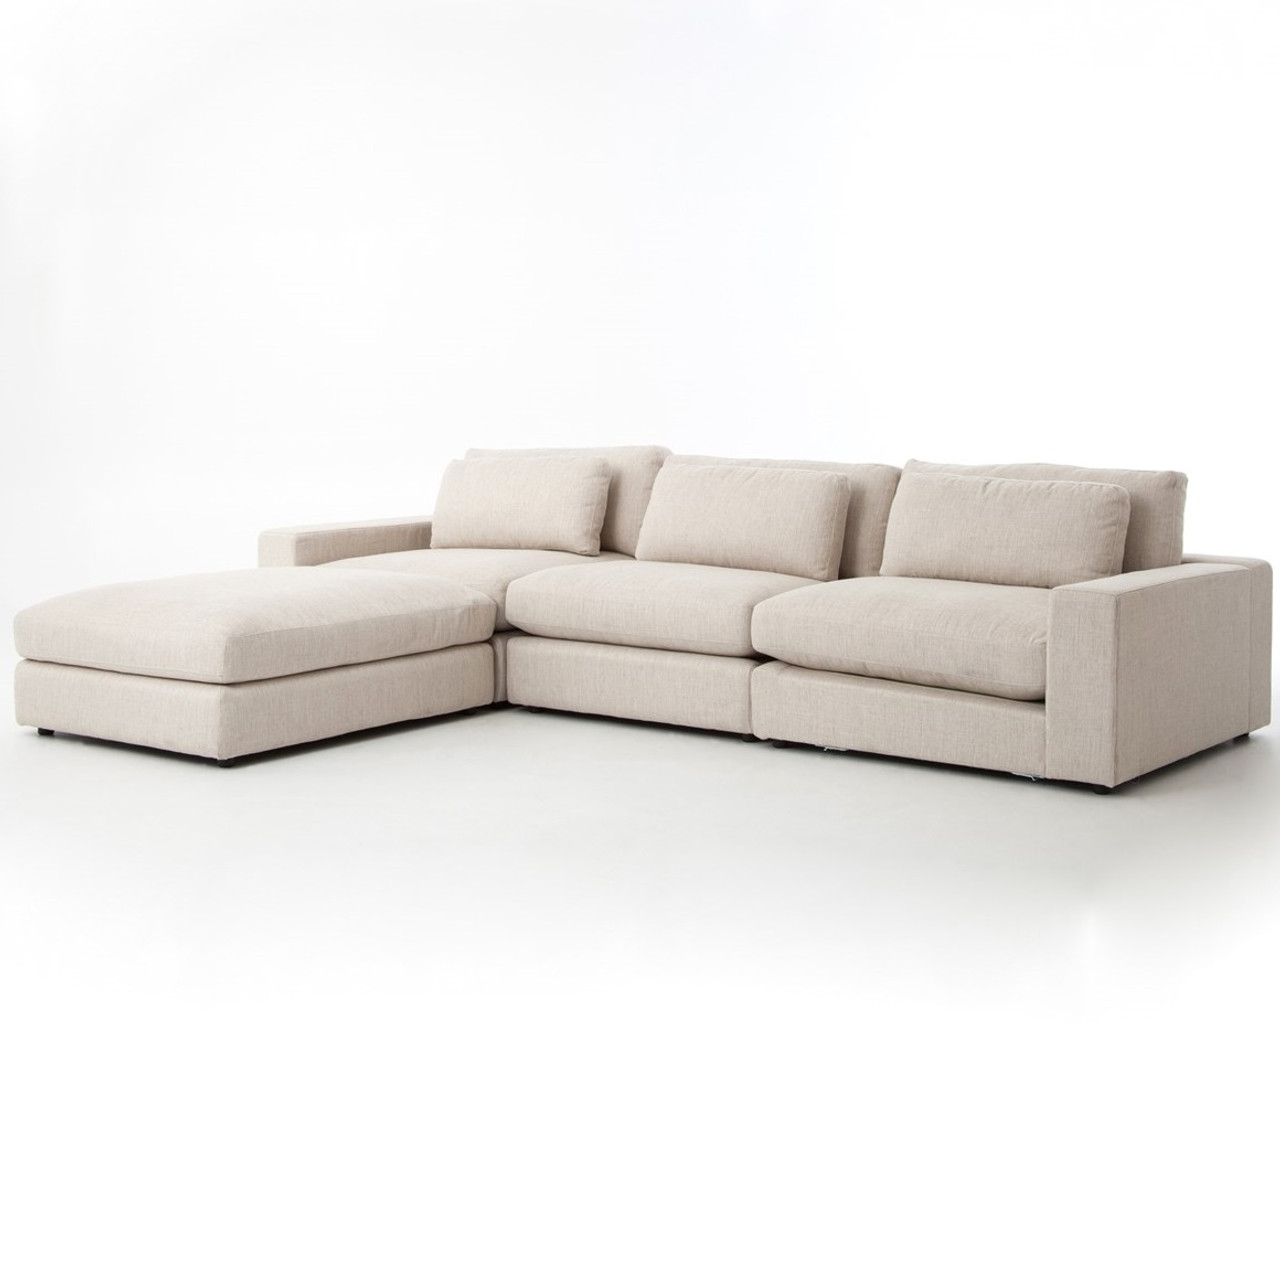 Bloor Beige Contemporary 4 Piece Sectional Sofa Zin Home